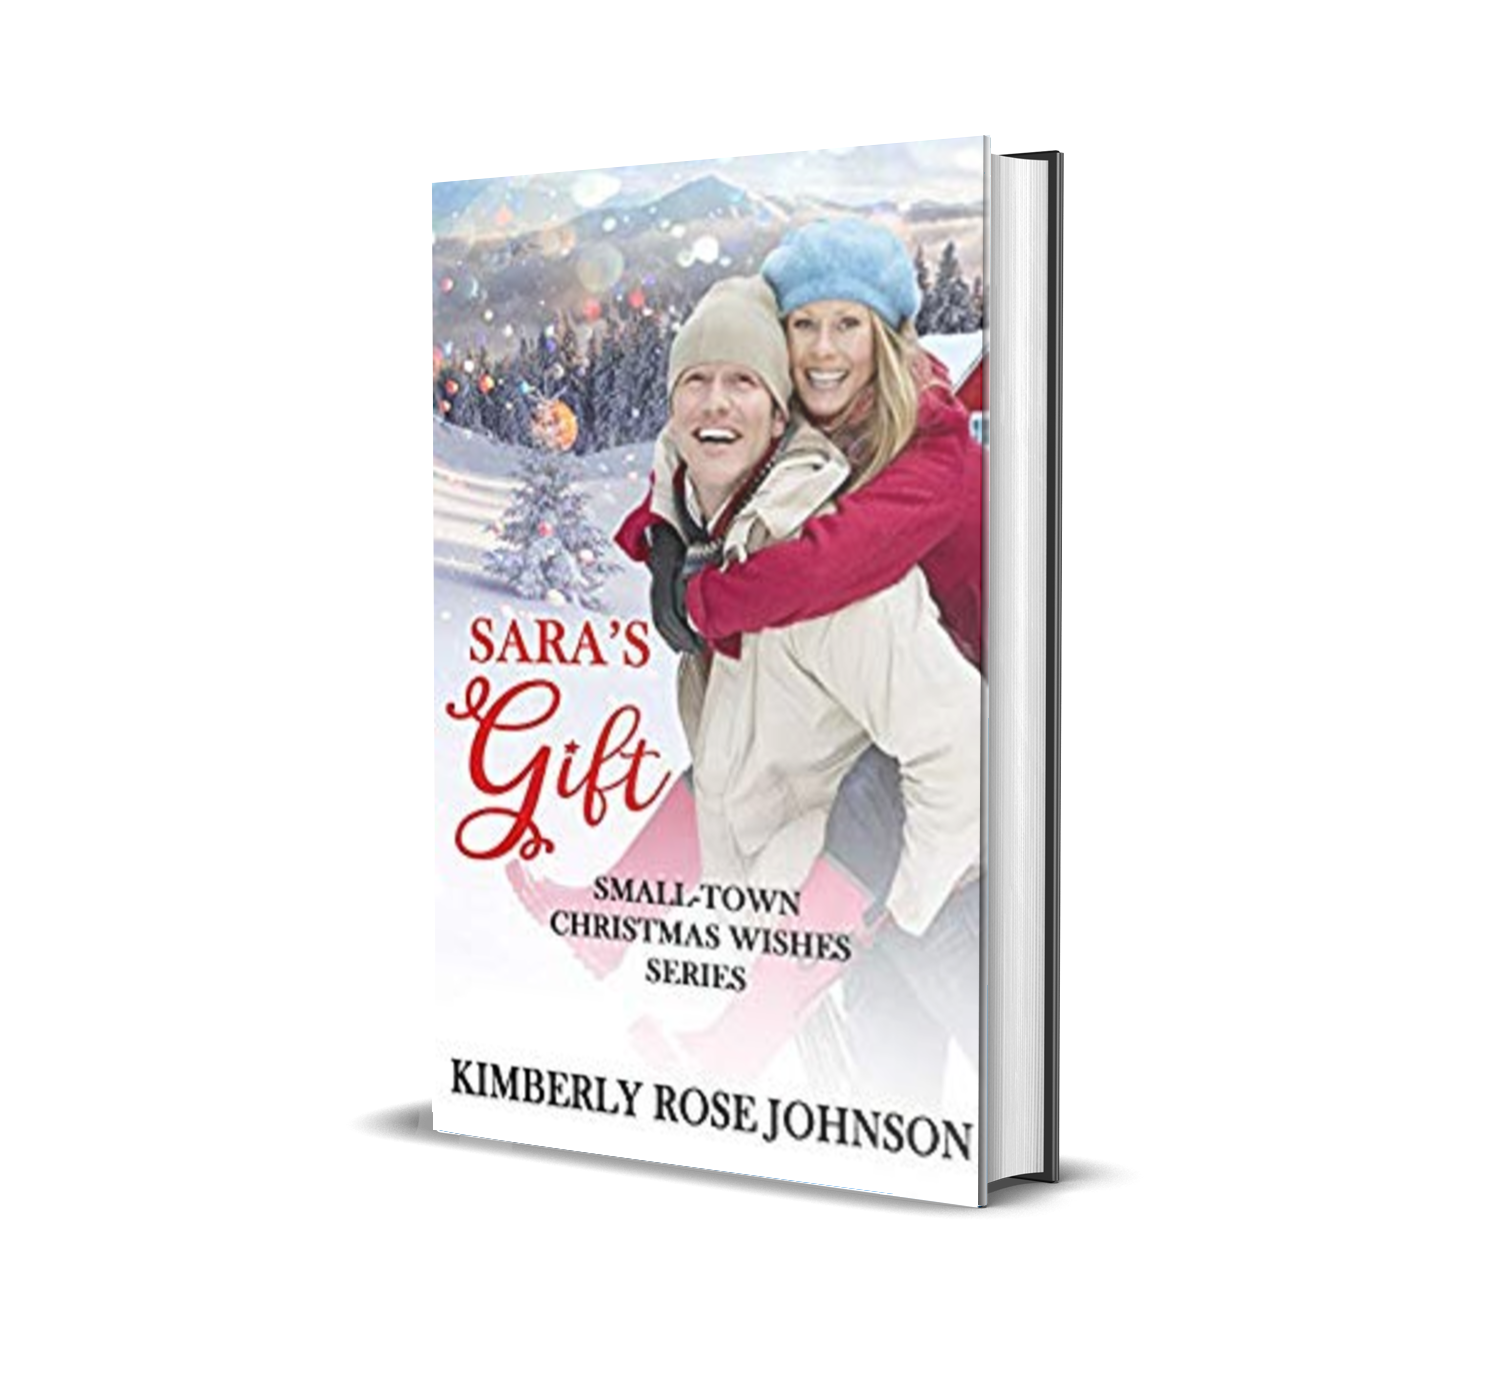 Sara's Gift by Kimberly Rose Johnson